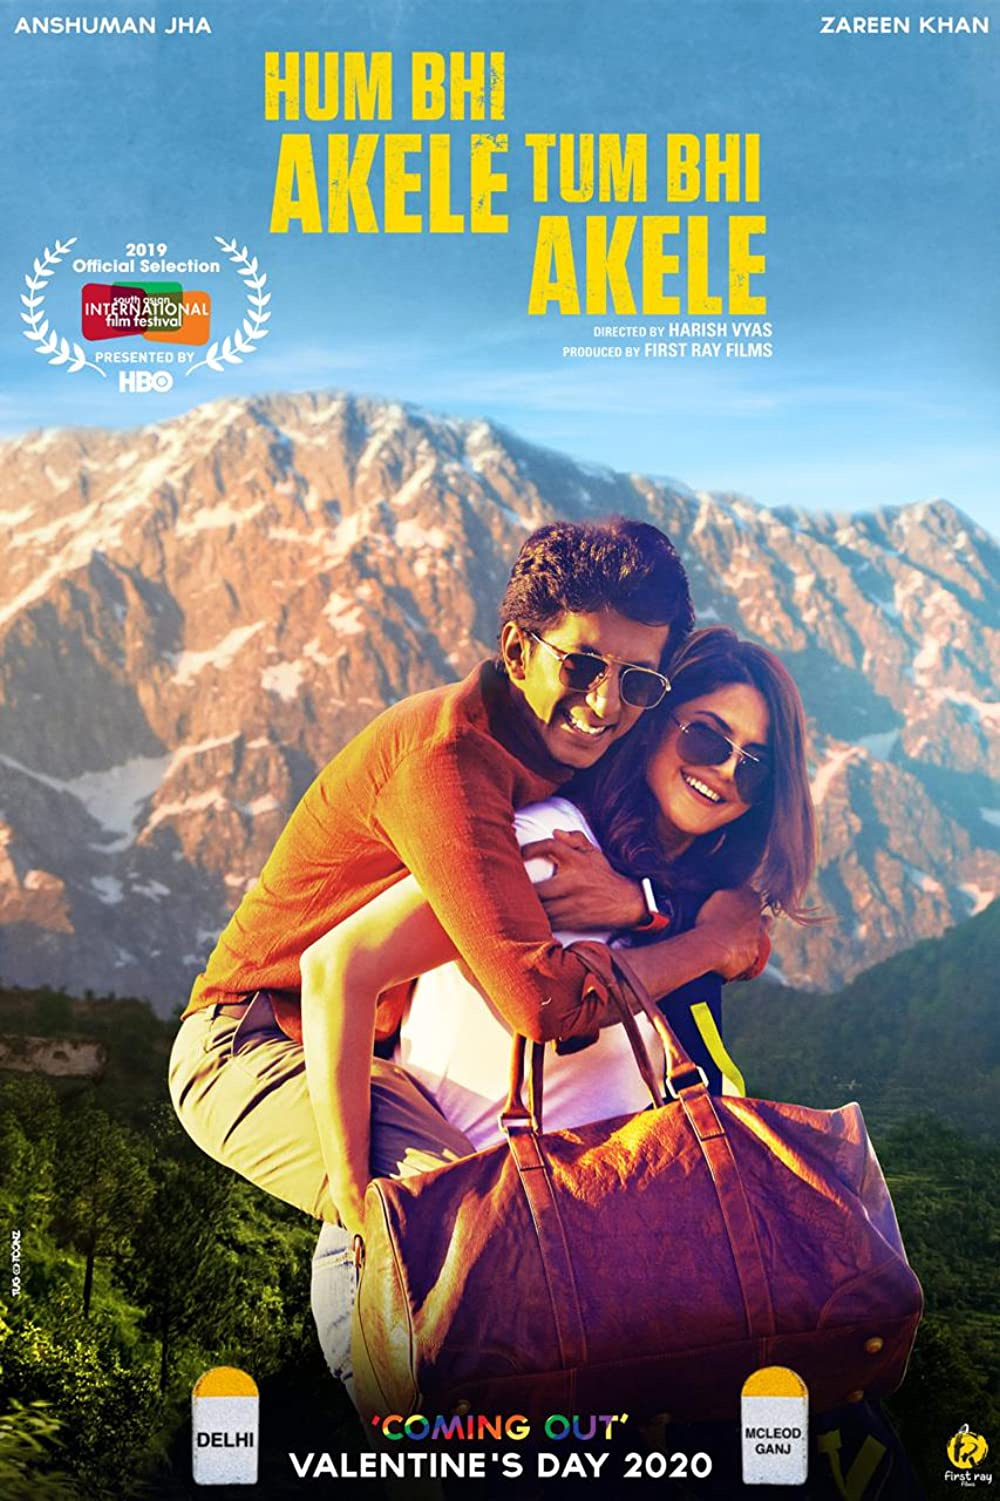 Hum Bhi Akele Tum Bhi Akele 2021 Hindi Movie Official Trailer 1080p HDRip Download